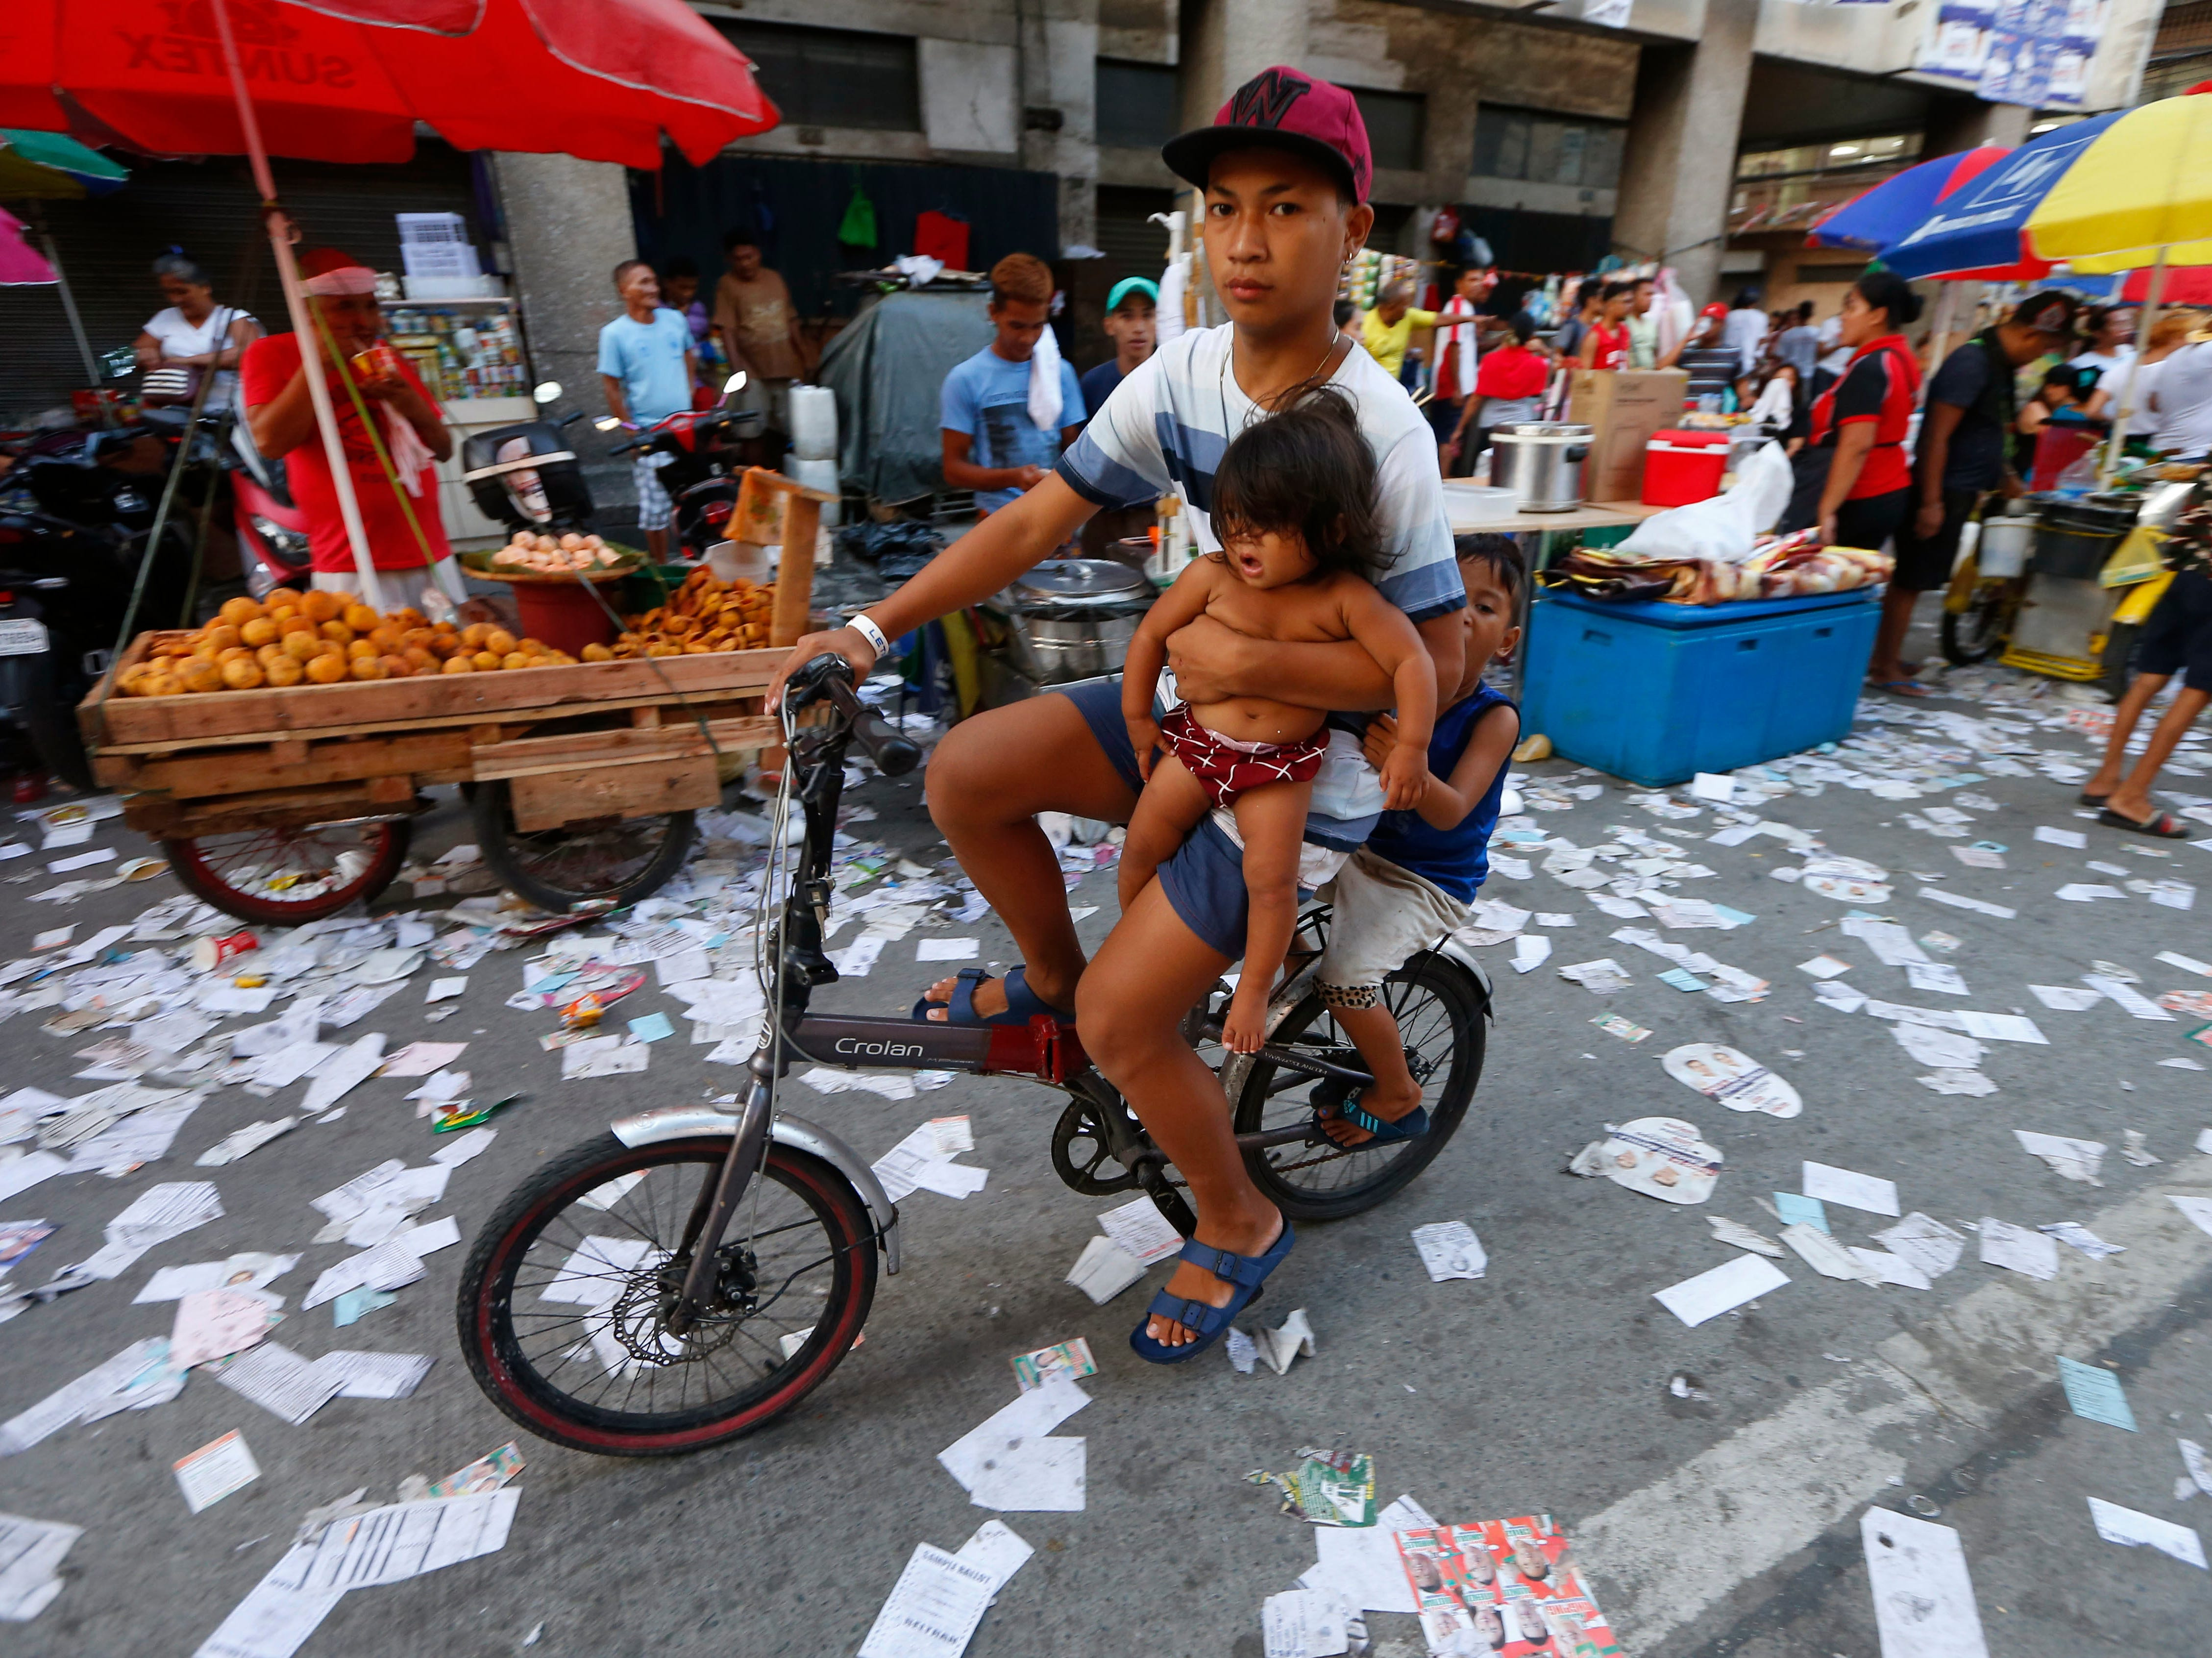 Election campaign materials litter the street as the country's midterm elections draw to a close Monday, May 13, 2019 in Manila, Philippines. Monday's midterm elections highlighted a showdown between President Rodrigo Duterte's allies who aim to dominate the Senate and an opposition fighting for check and balance under a leader they regard as a looming dictator.